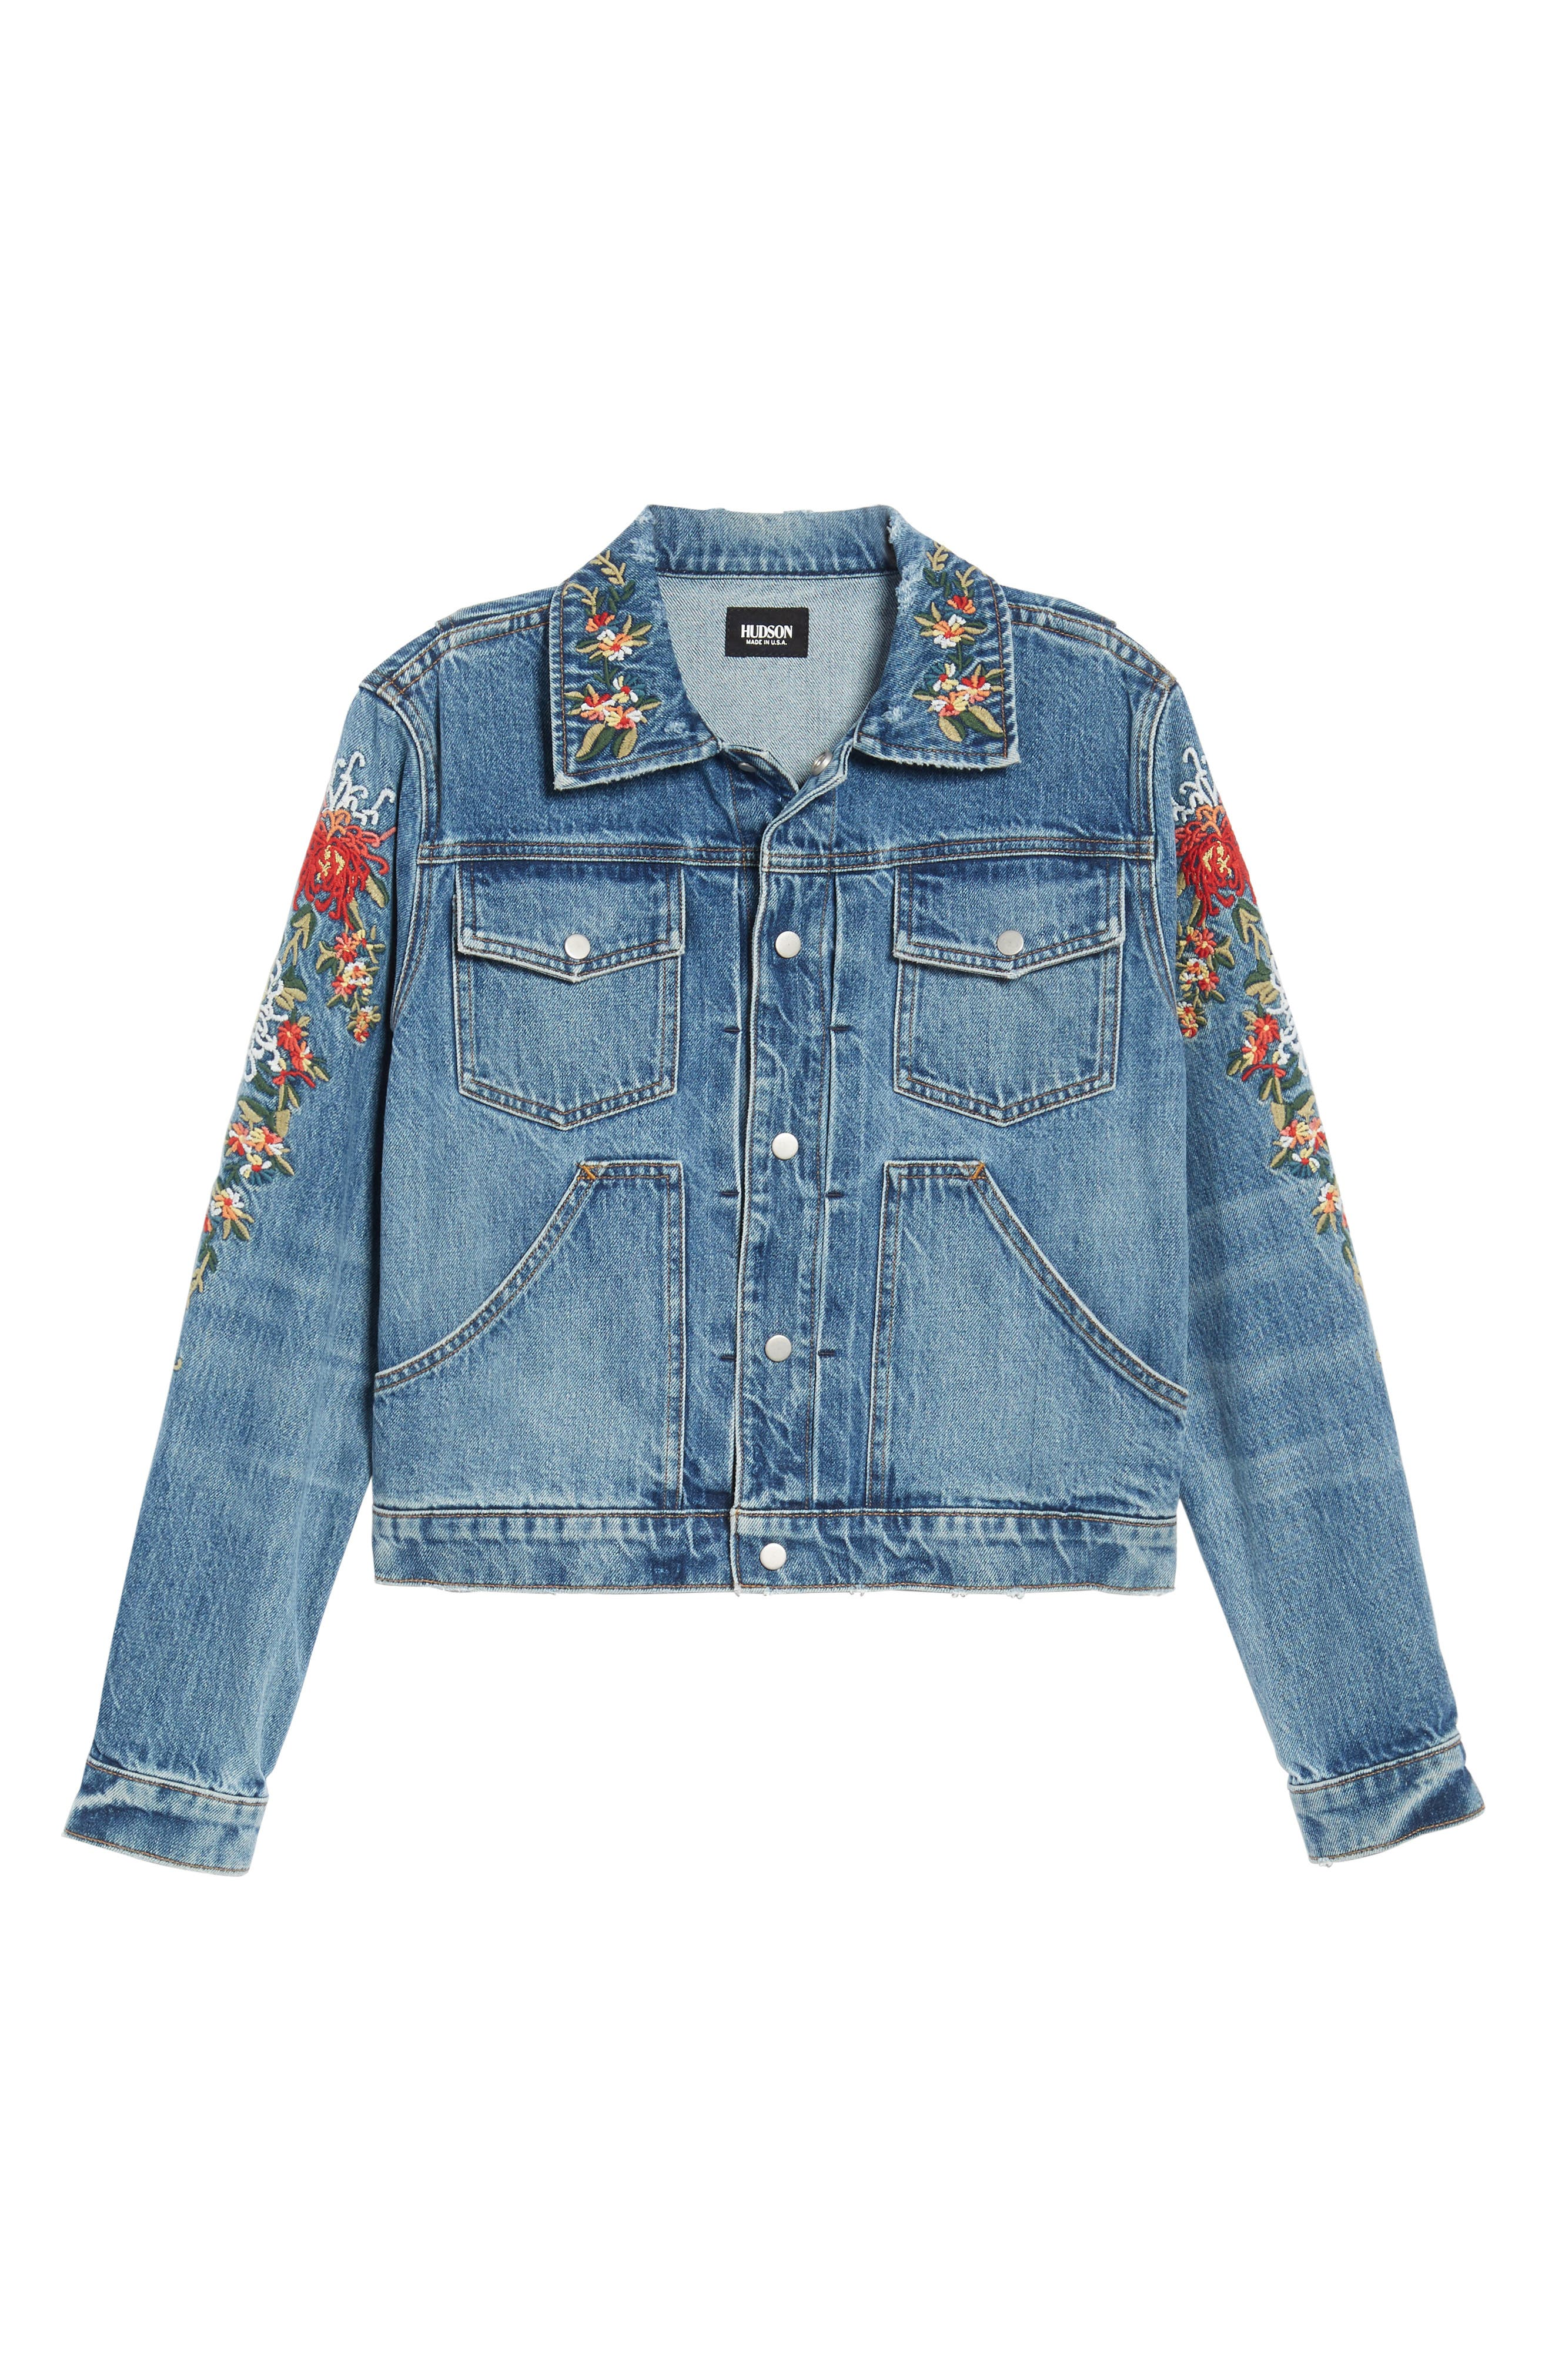 Ren Denim Trucker Jacket,                             Alternate thumbnail 10, color,